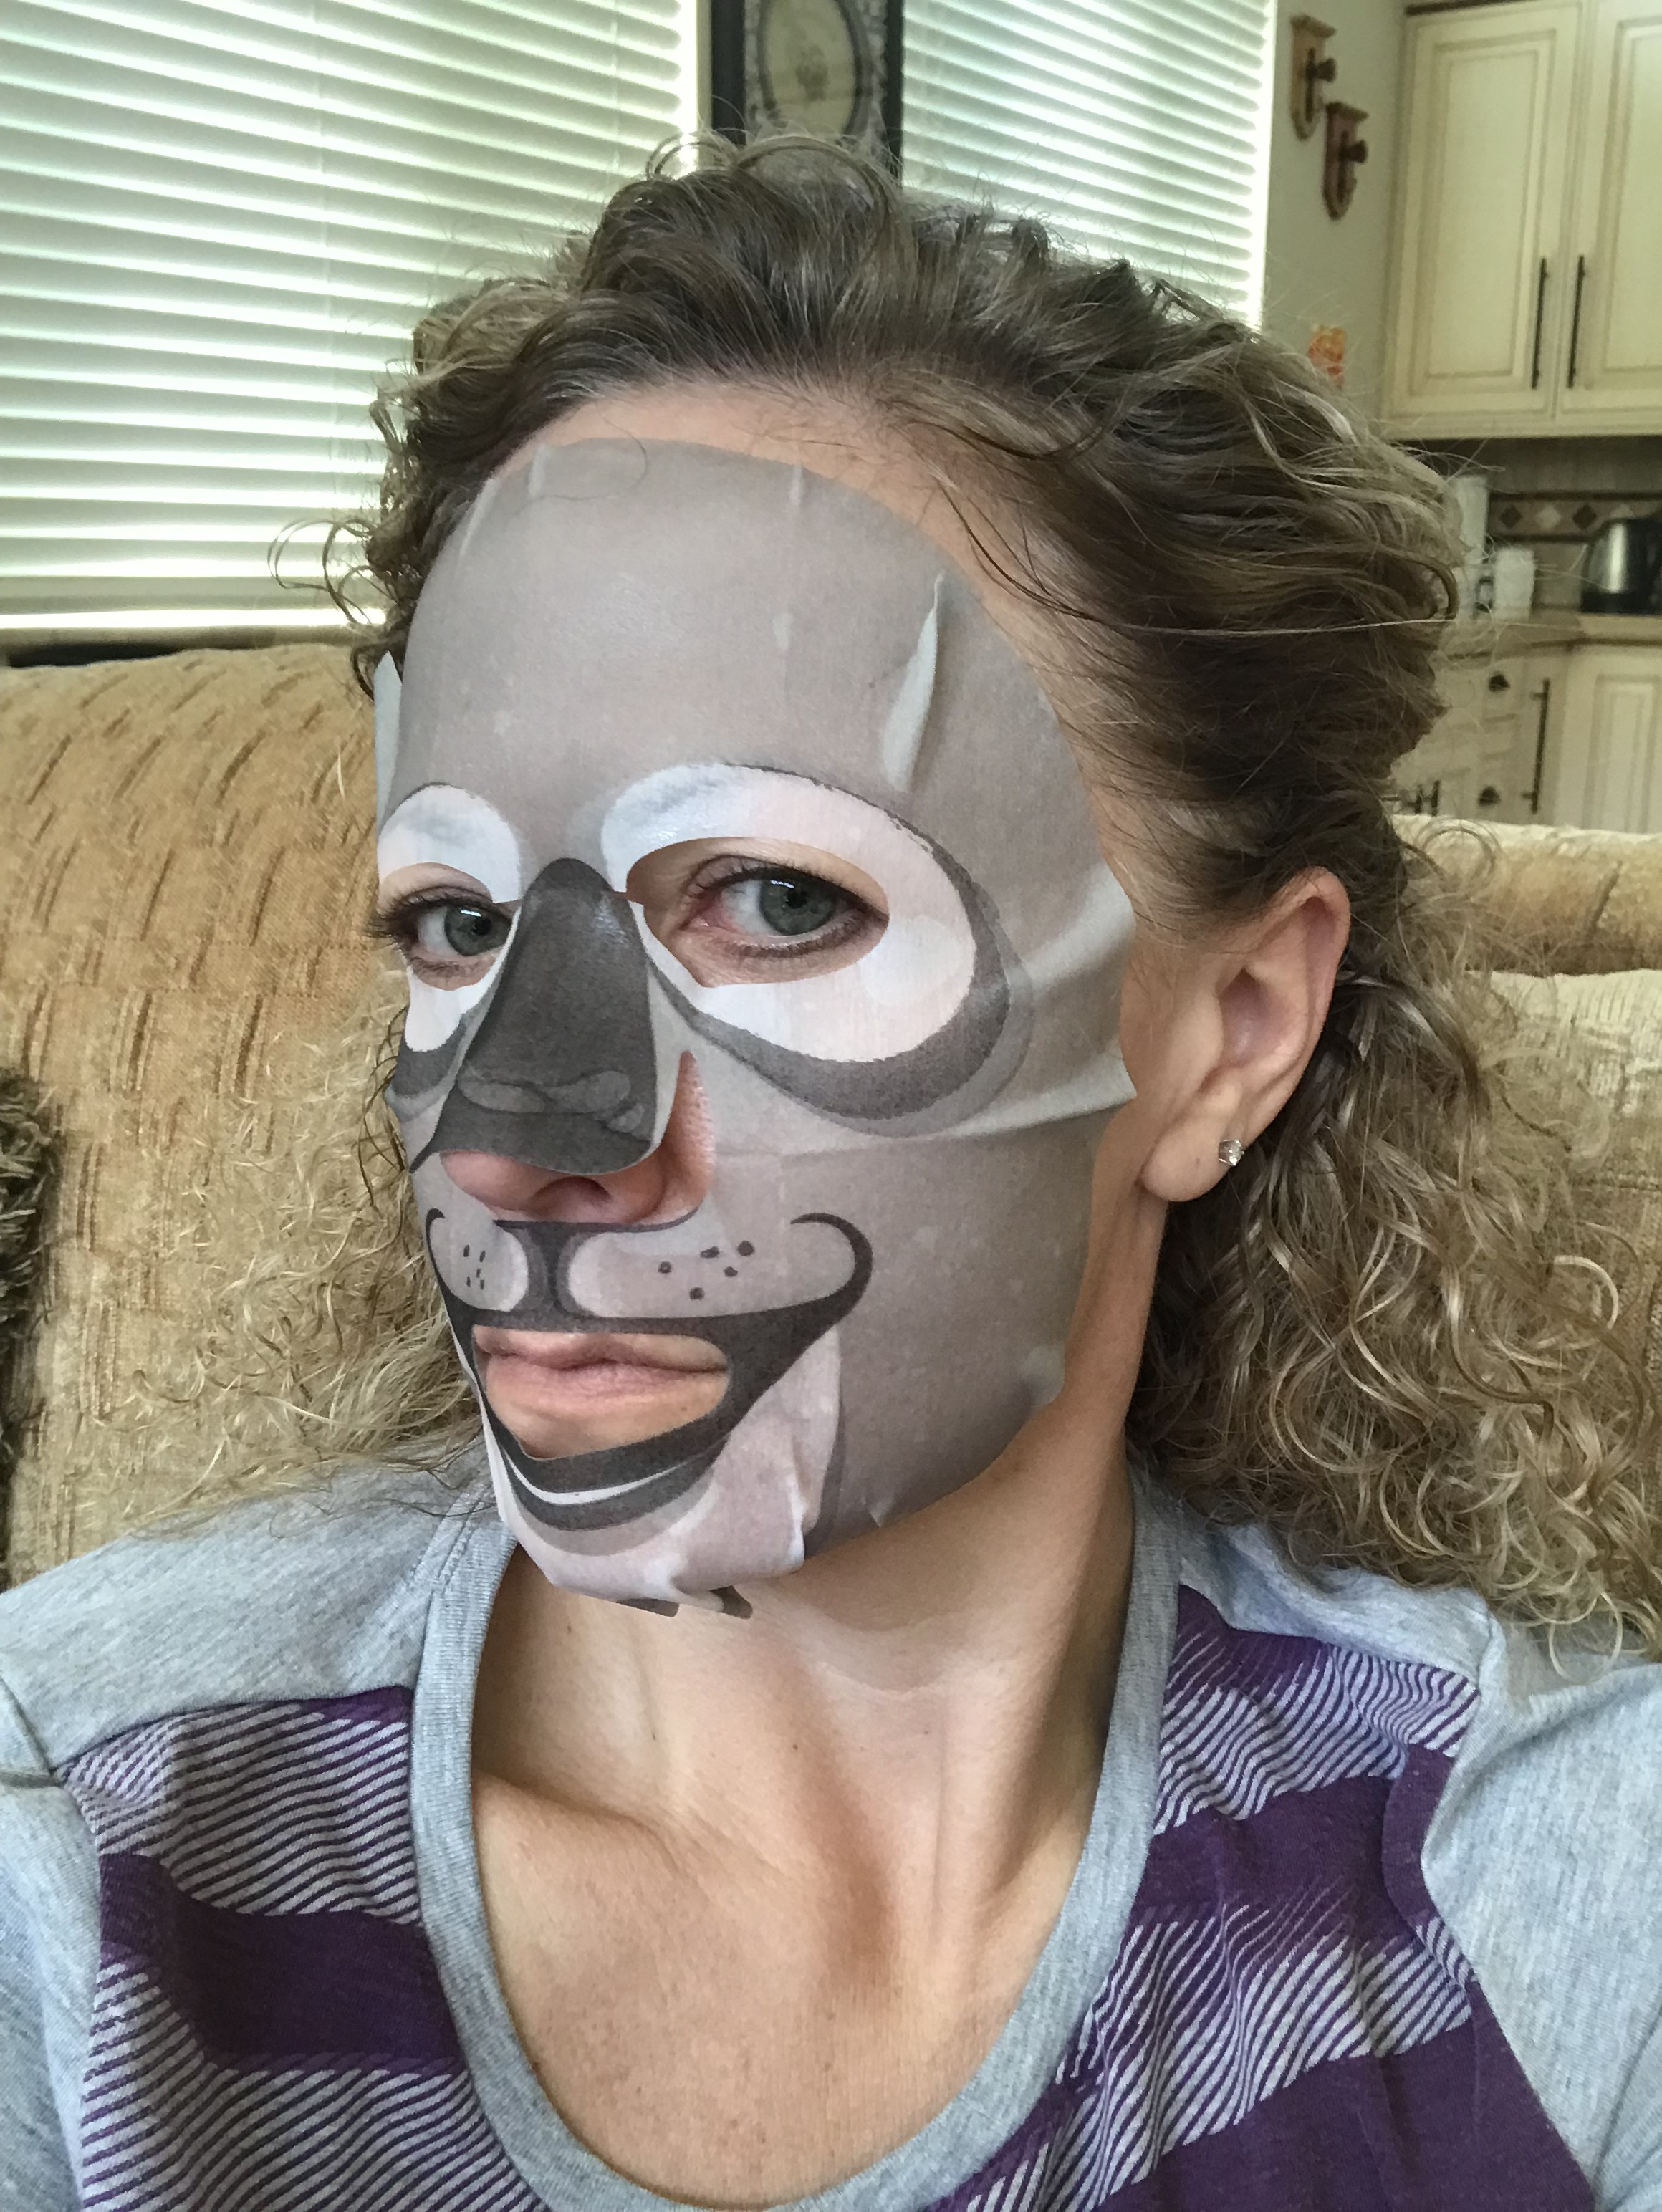 Koala Mask - well I did not know the package was literal but yeah a koala mask.